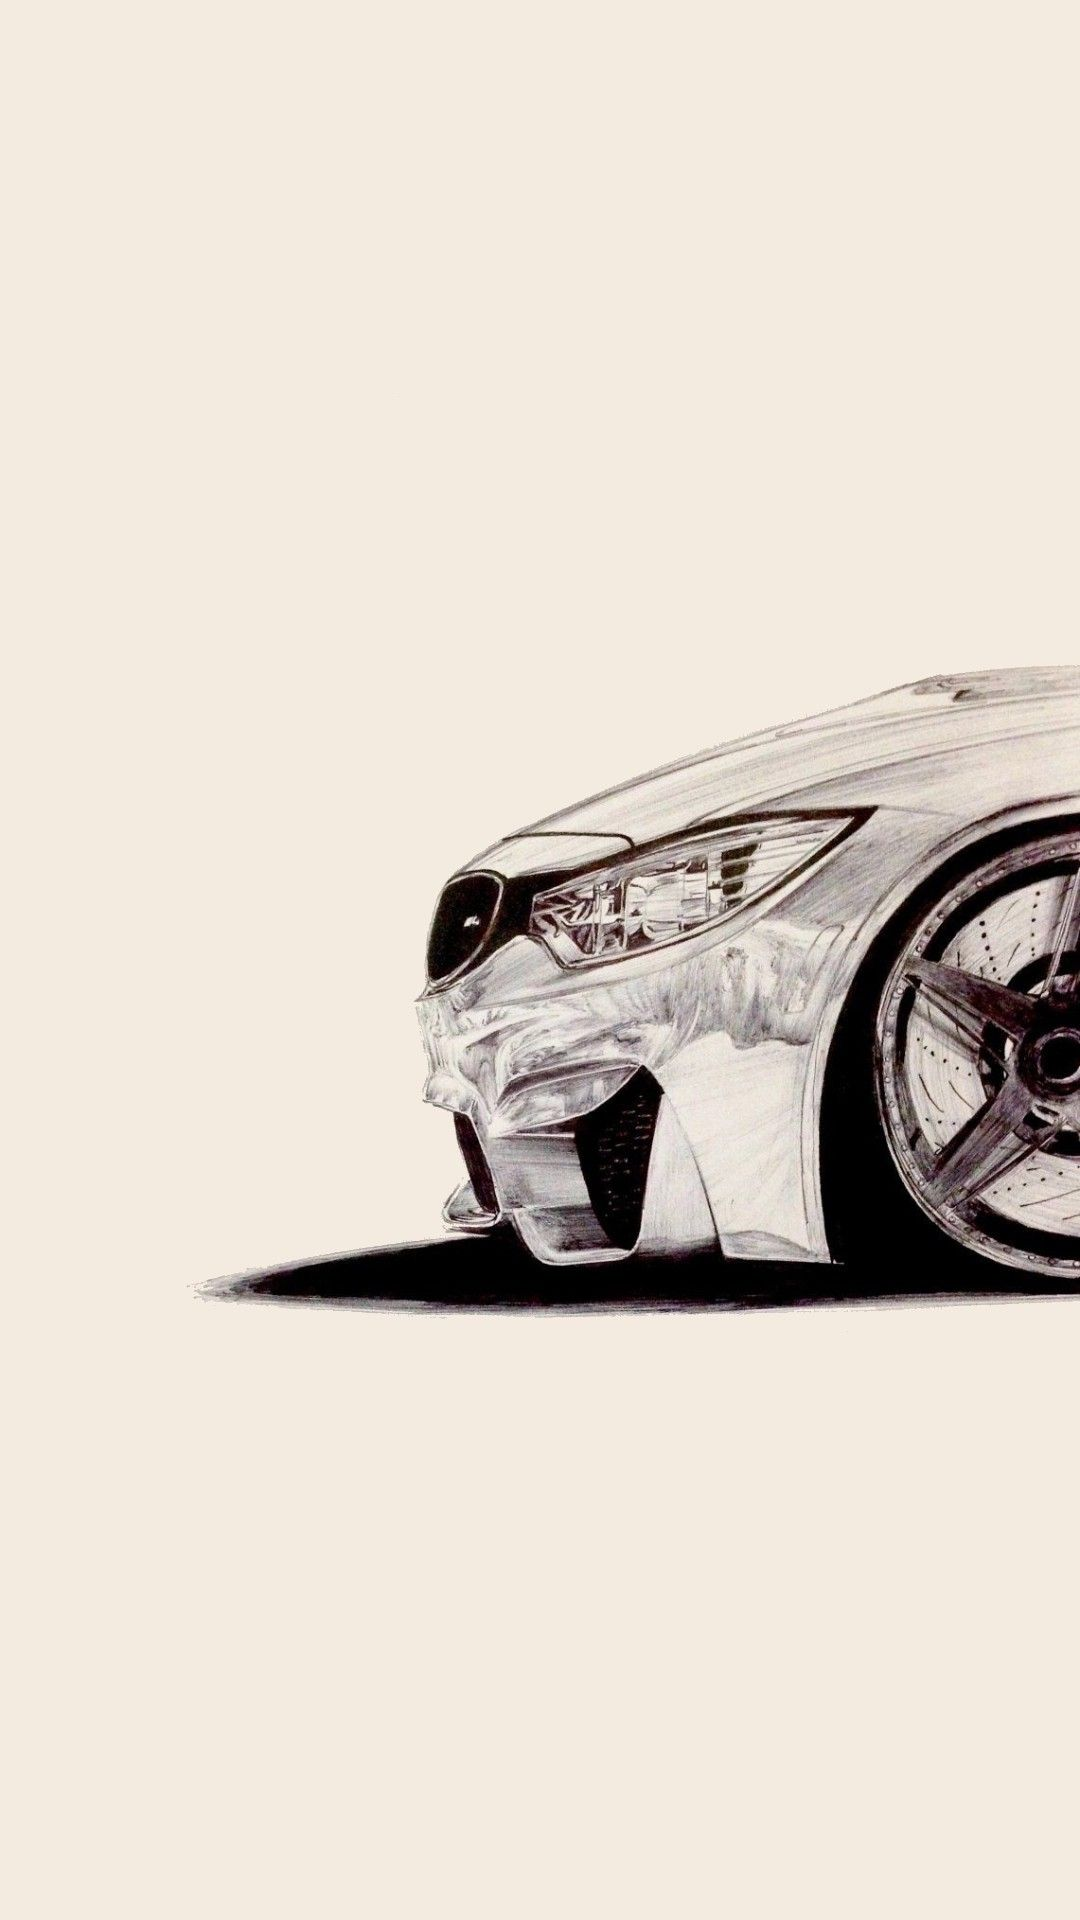 Pin By Just Browsing On Auto Designs Art Cars Bmw Wallpapers